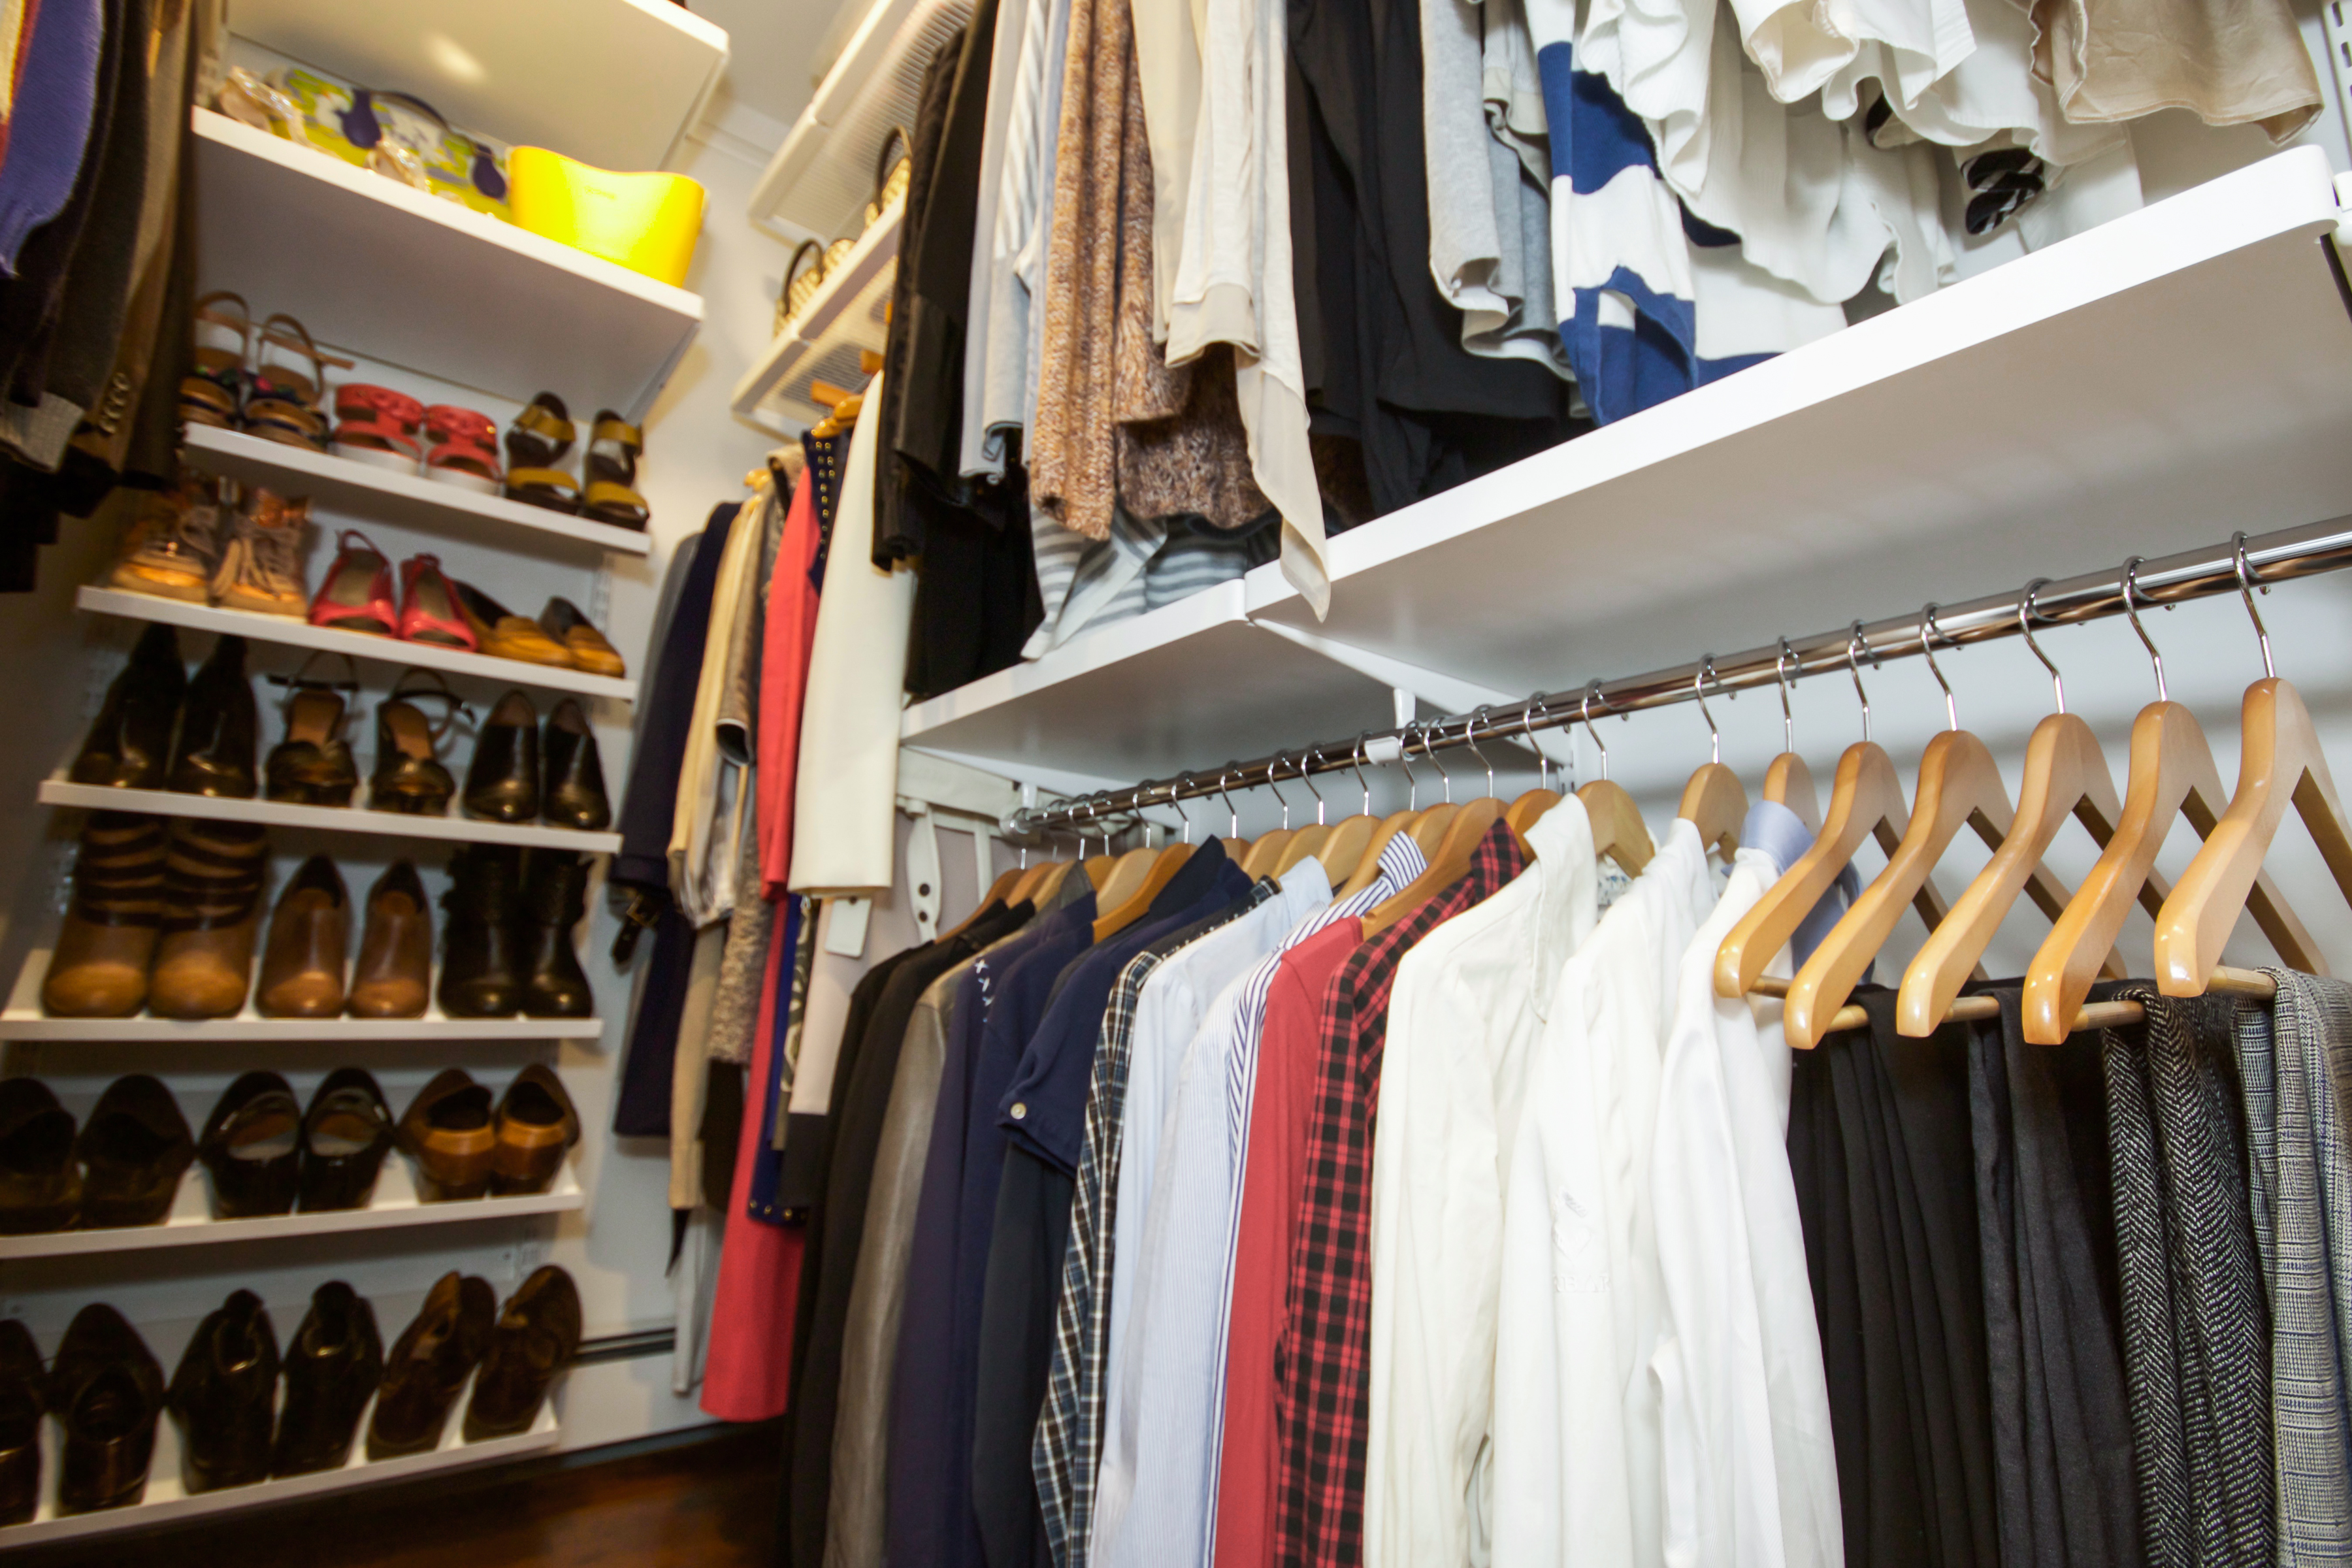 Fall Clothes organized